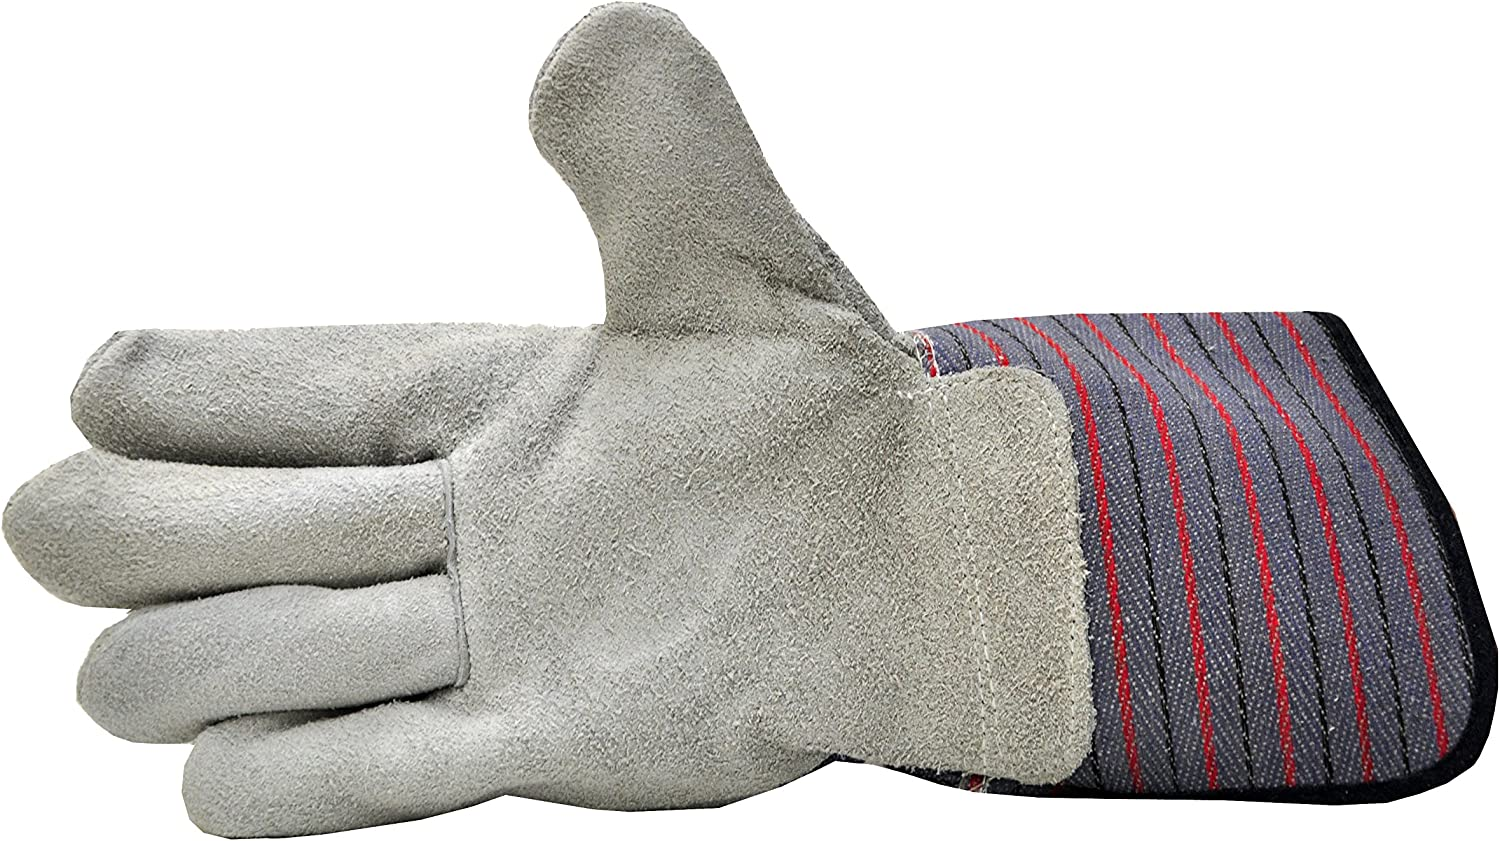 G & F 5025L-5 Premium Suede Leather Work Gloves with Extra Long Rubberized Safety Cuff